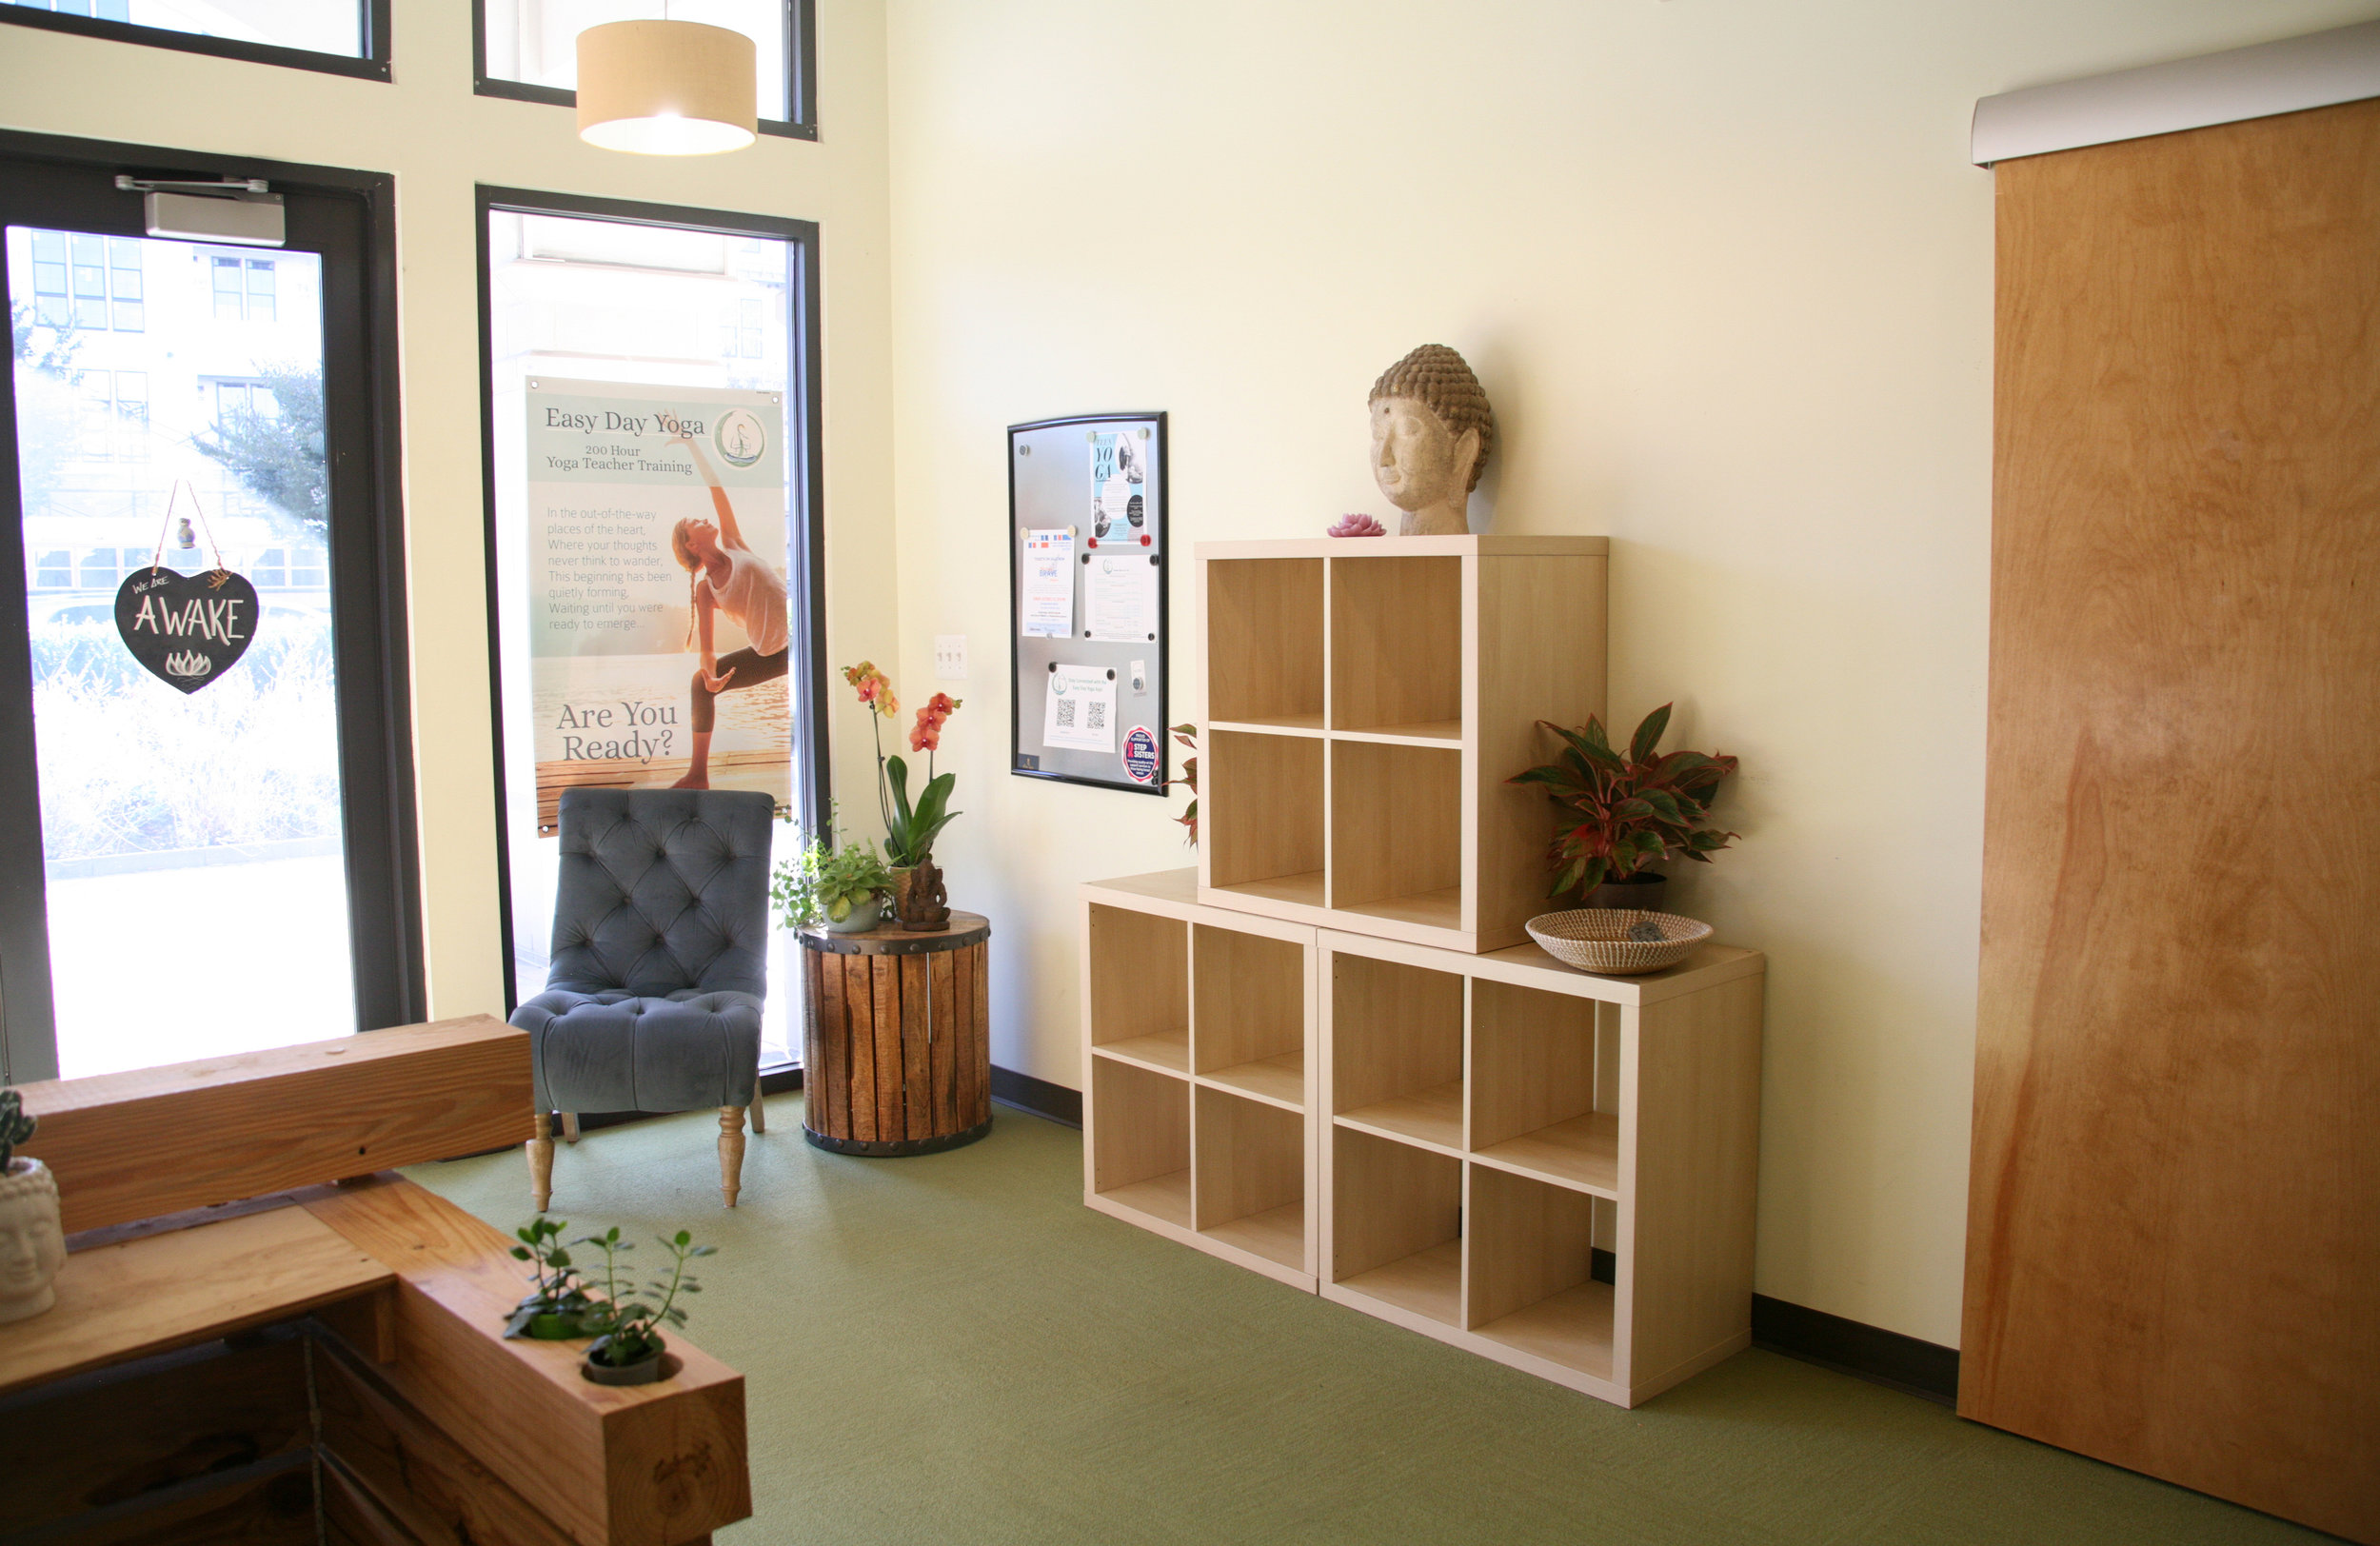 Cubbies for you to store your personal belongings.